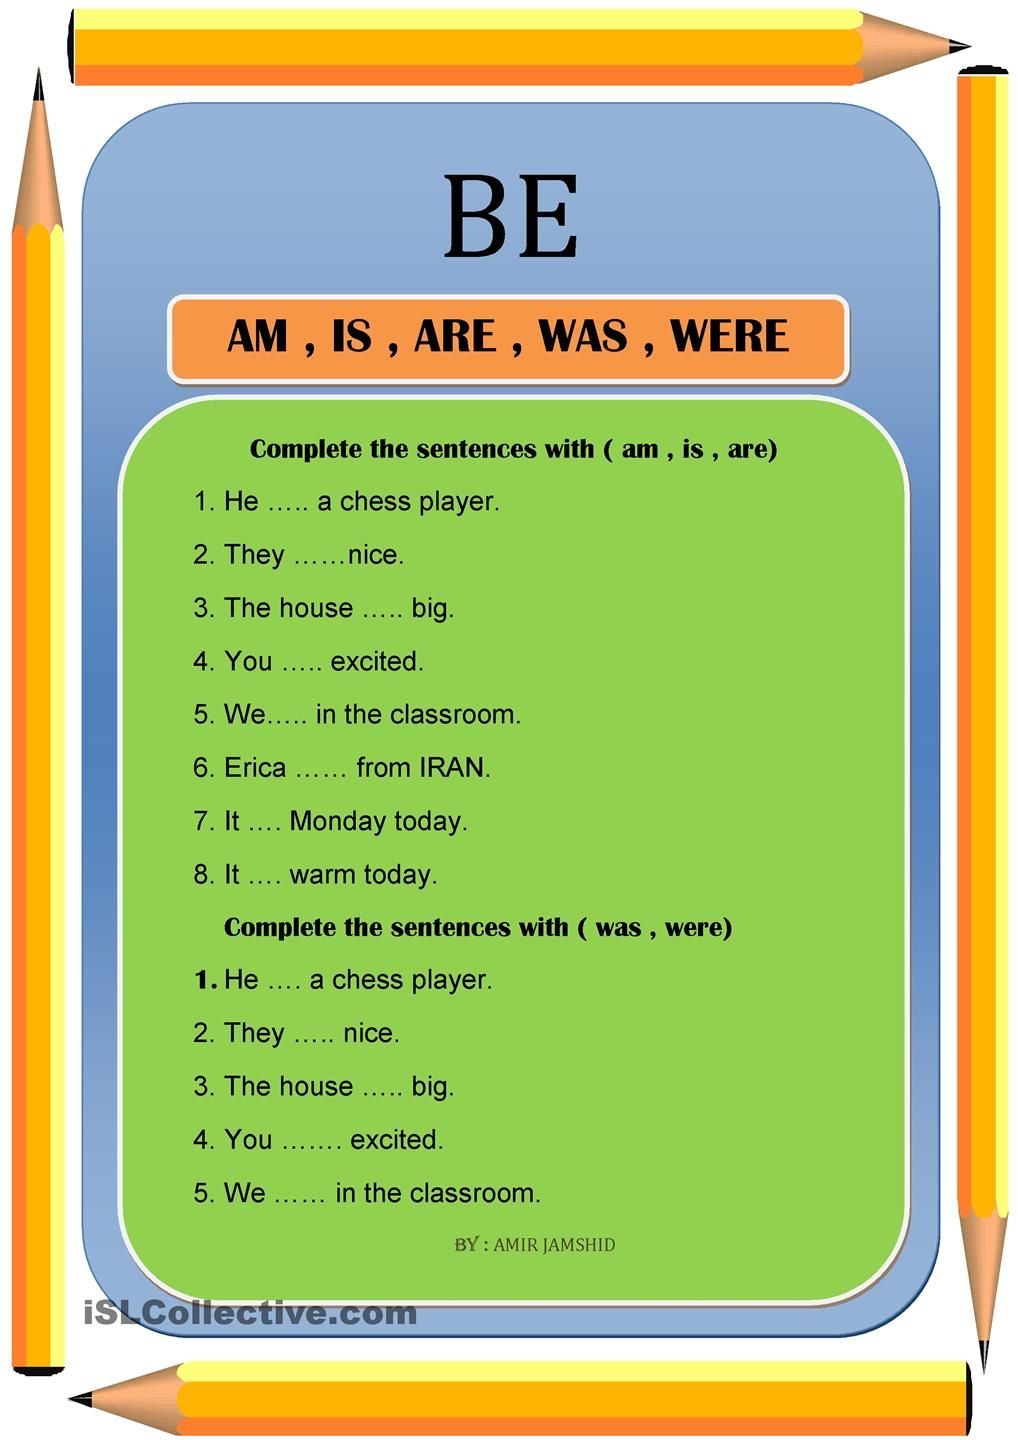 BE ( am , is , are , was , were ) | to be | Pinterest